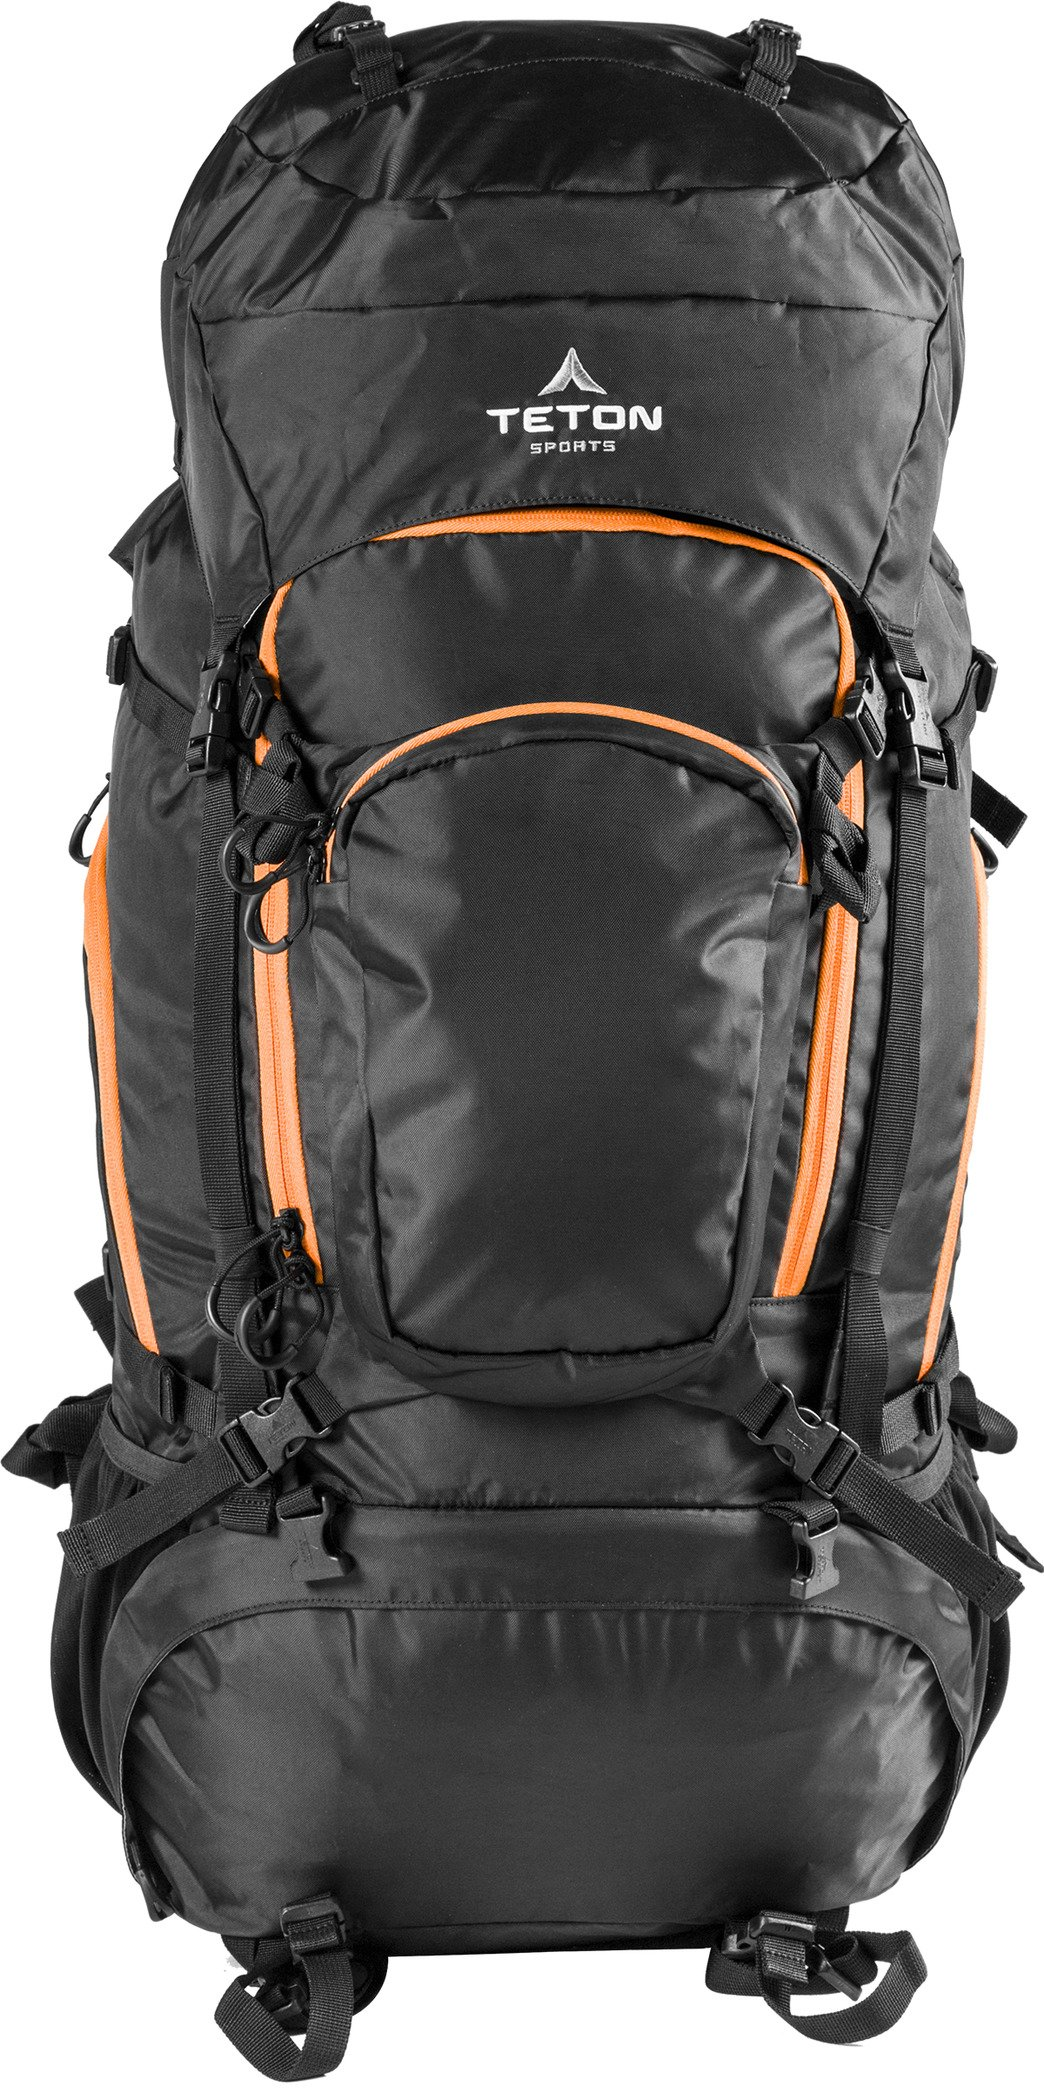 TETON Sports Grand 5500 Backpack; Ultralight Backpacking Gear; Hiking Backpack for Camping, Hunting, Mountaineering, and Outdoor Sports; Free Rain Cover Included by Teton Sports